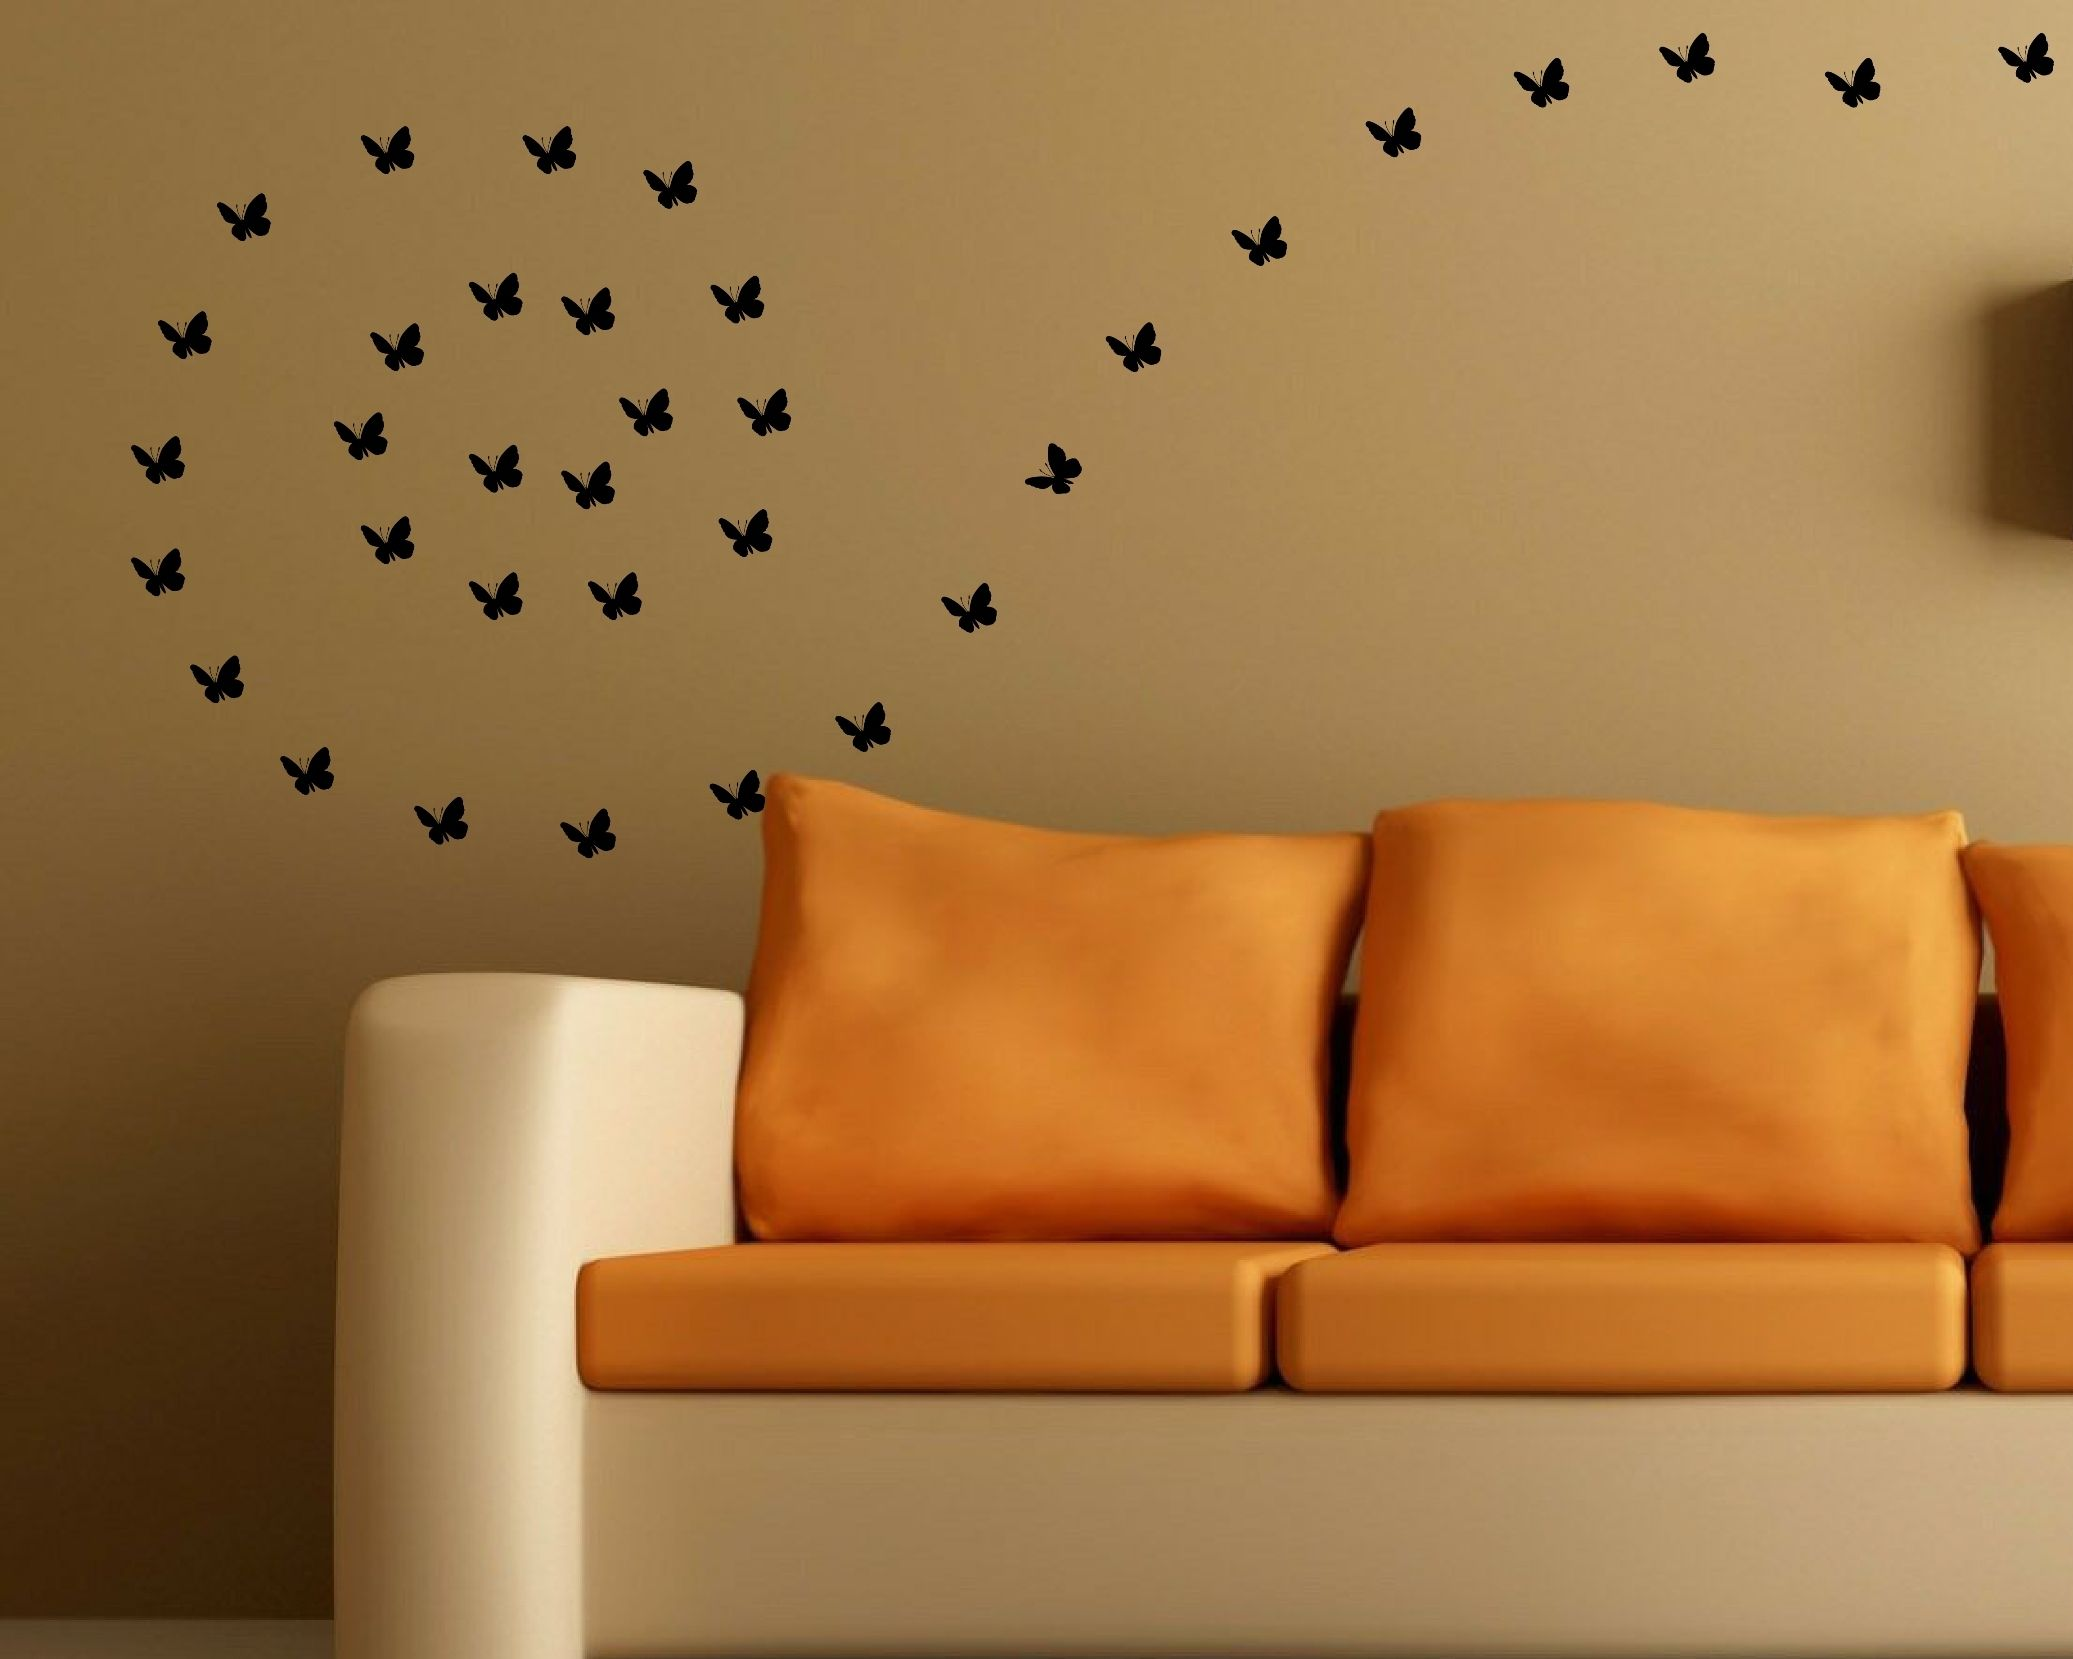 Black butterfly wall decal on a sand color brown wall wall decal black butterfly wall decal on a sand color brown wall amipublicfo Image collections